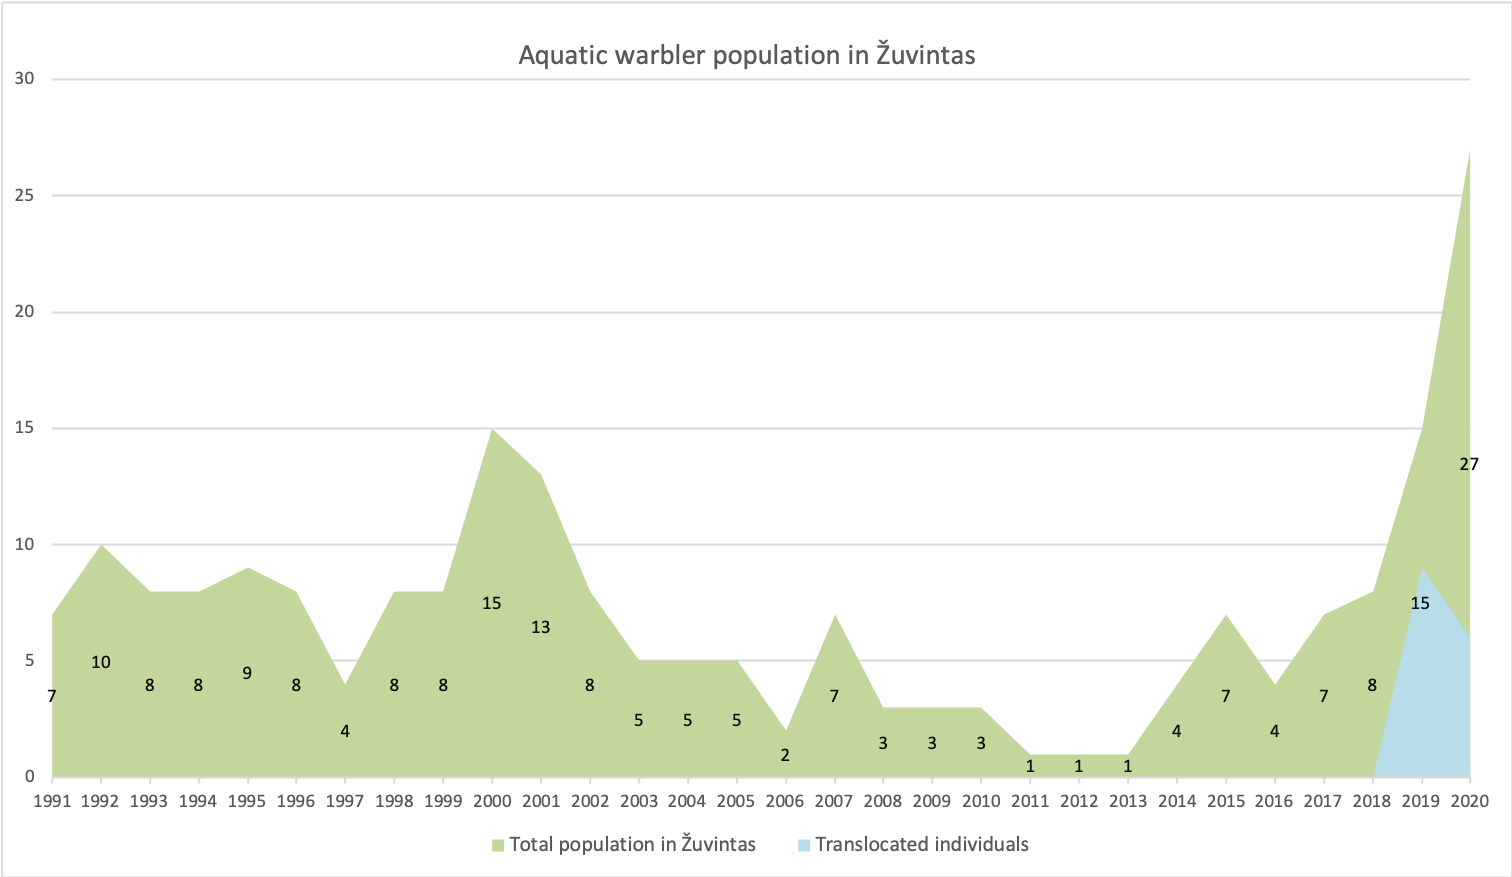 Population change of Aquatic warbler in Žuvintas Biosphere Reserve. Consecutive research of Aquatic warblers in the Žuvintas Biosphere Reserve has been carried out since 1991. To date, the highest number of singing males (15) has been observed in 2000 and 2019. The data of 2020 will be revised after the second count in July.